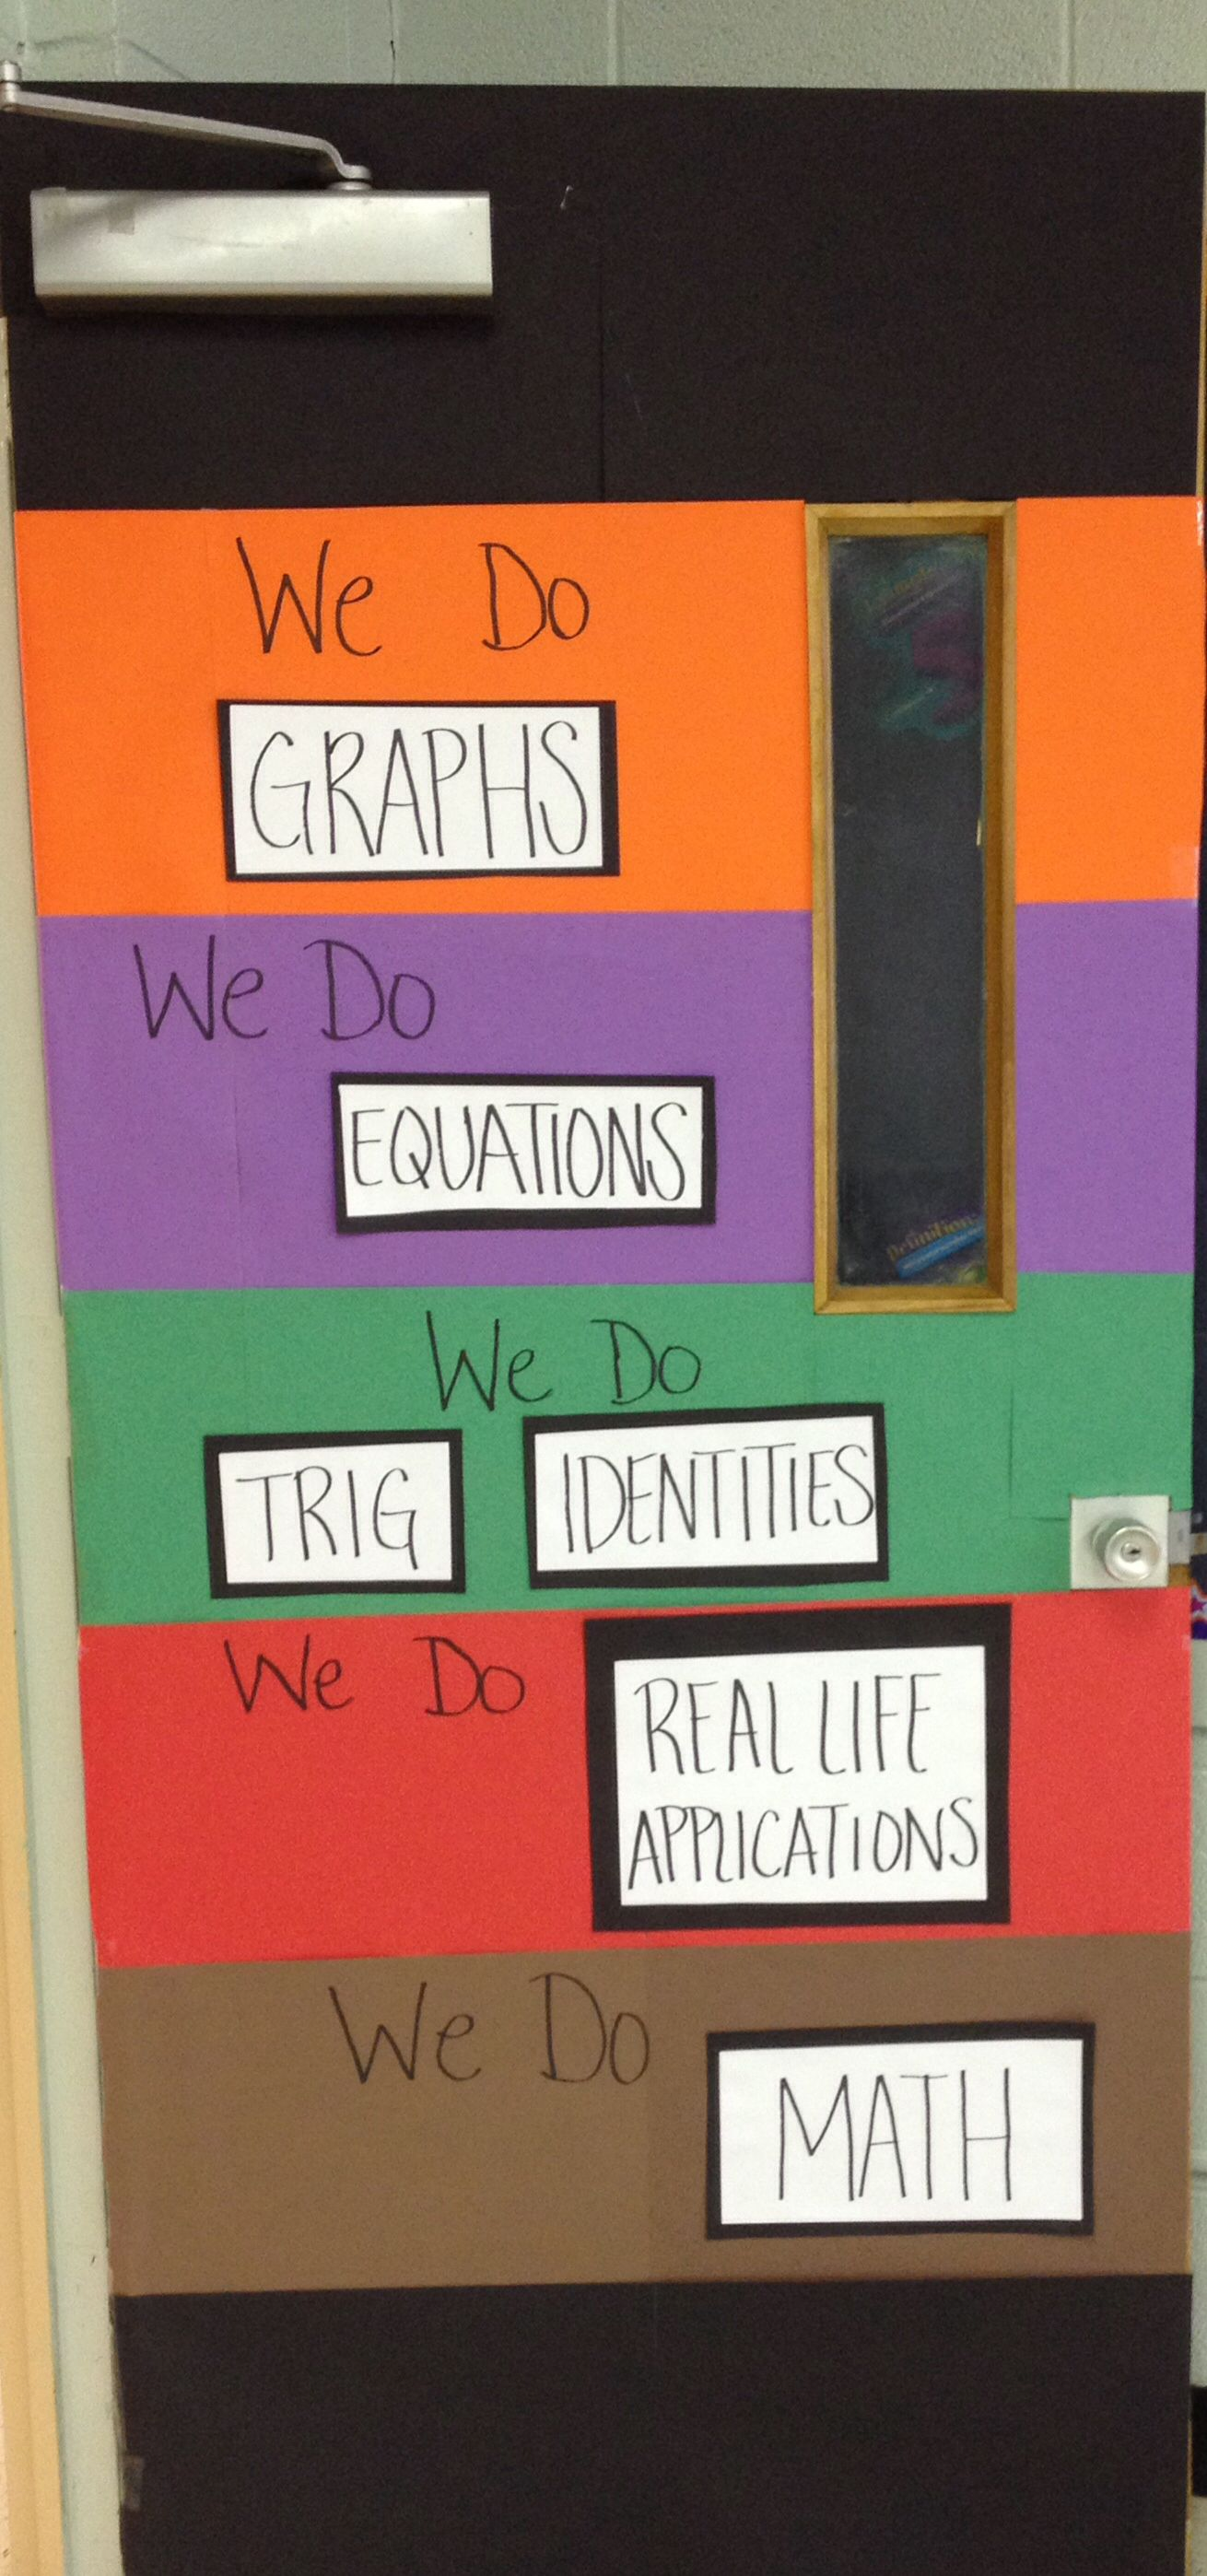 Math door decorations | My Classroom | Pinterest | Math ...